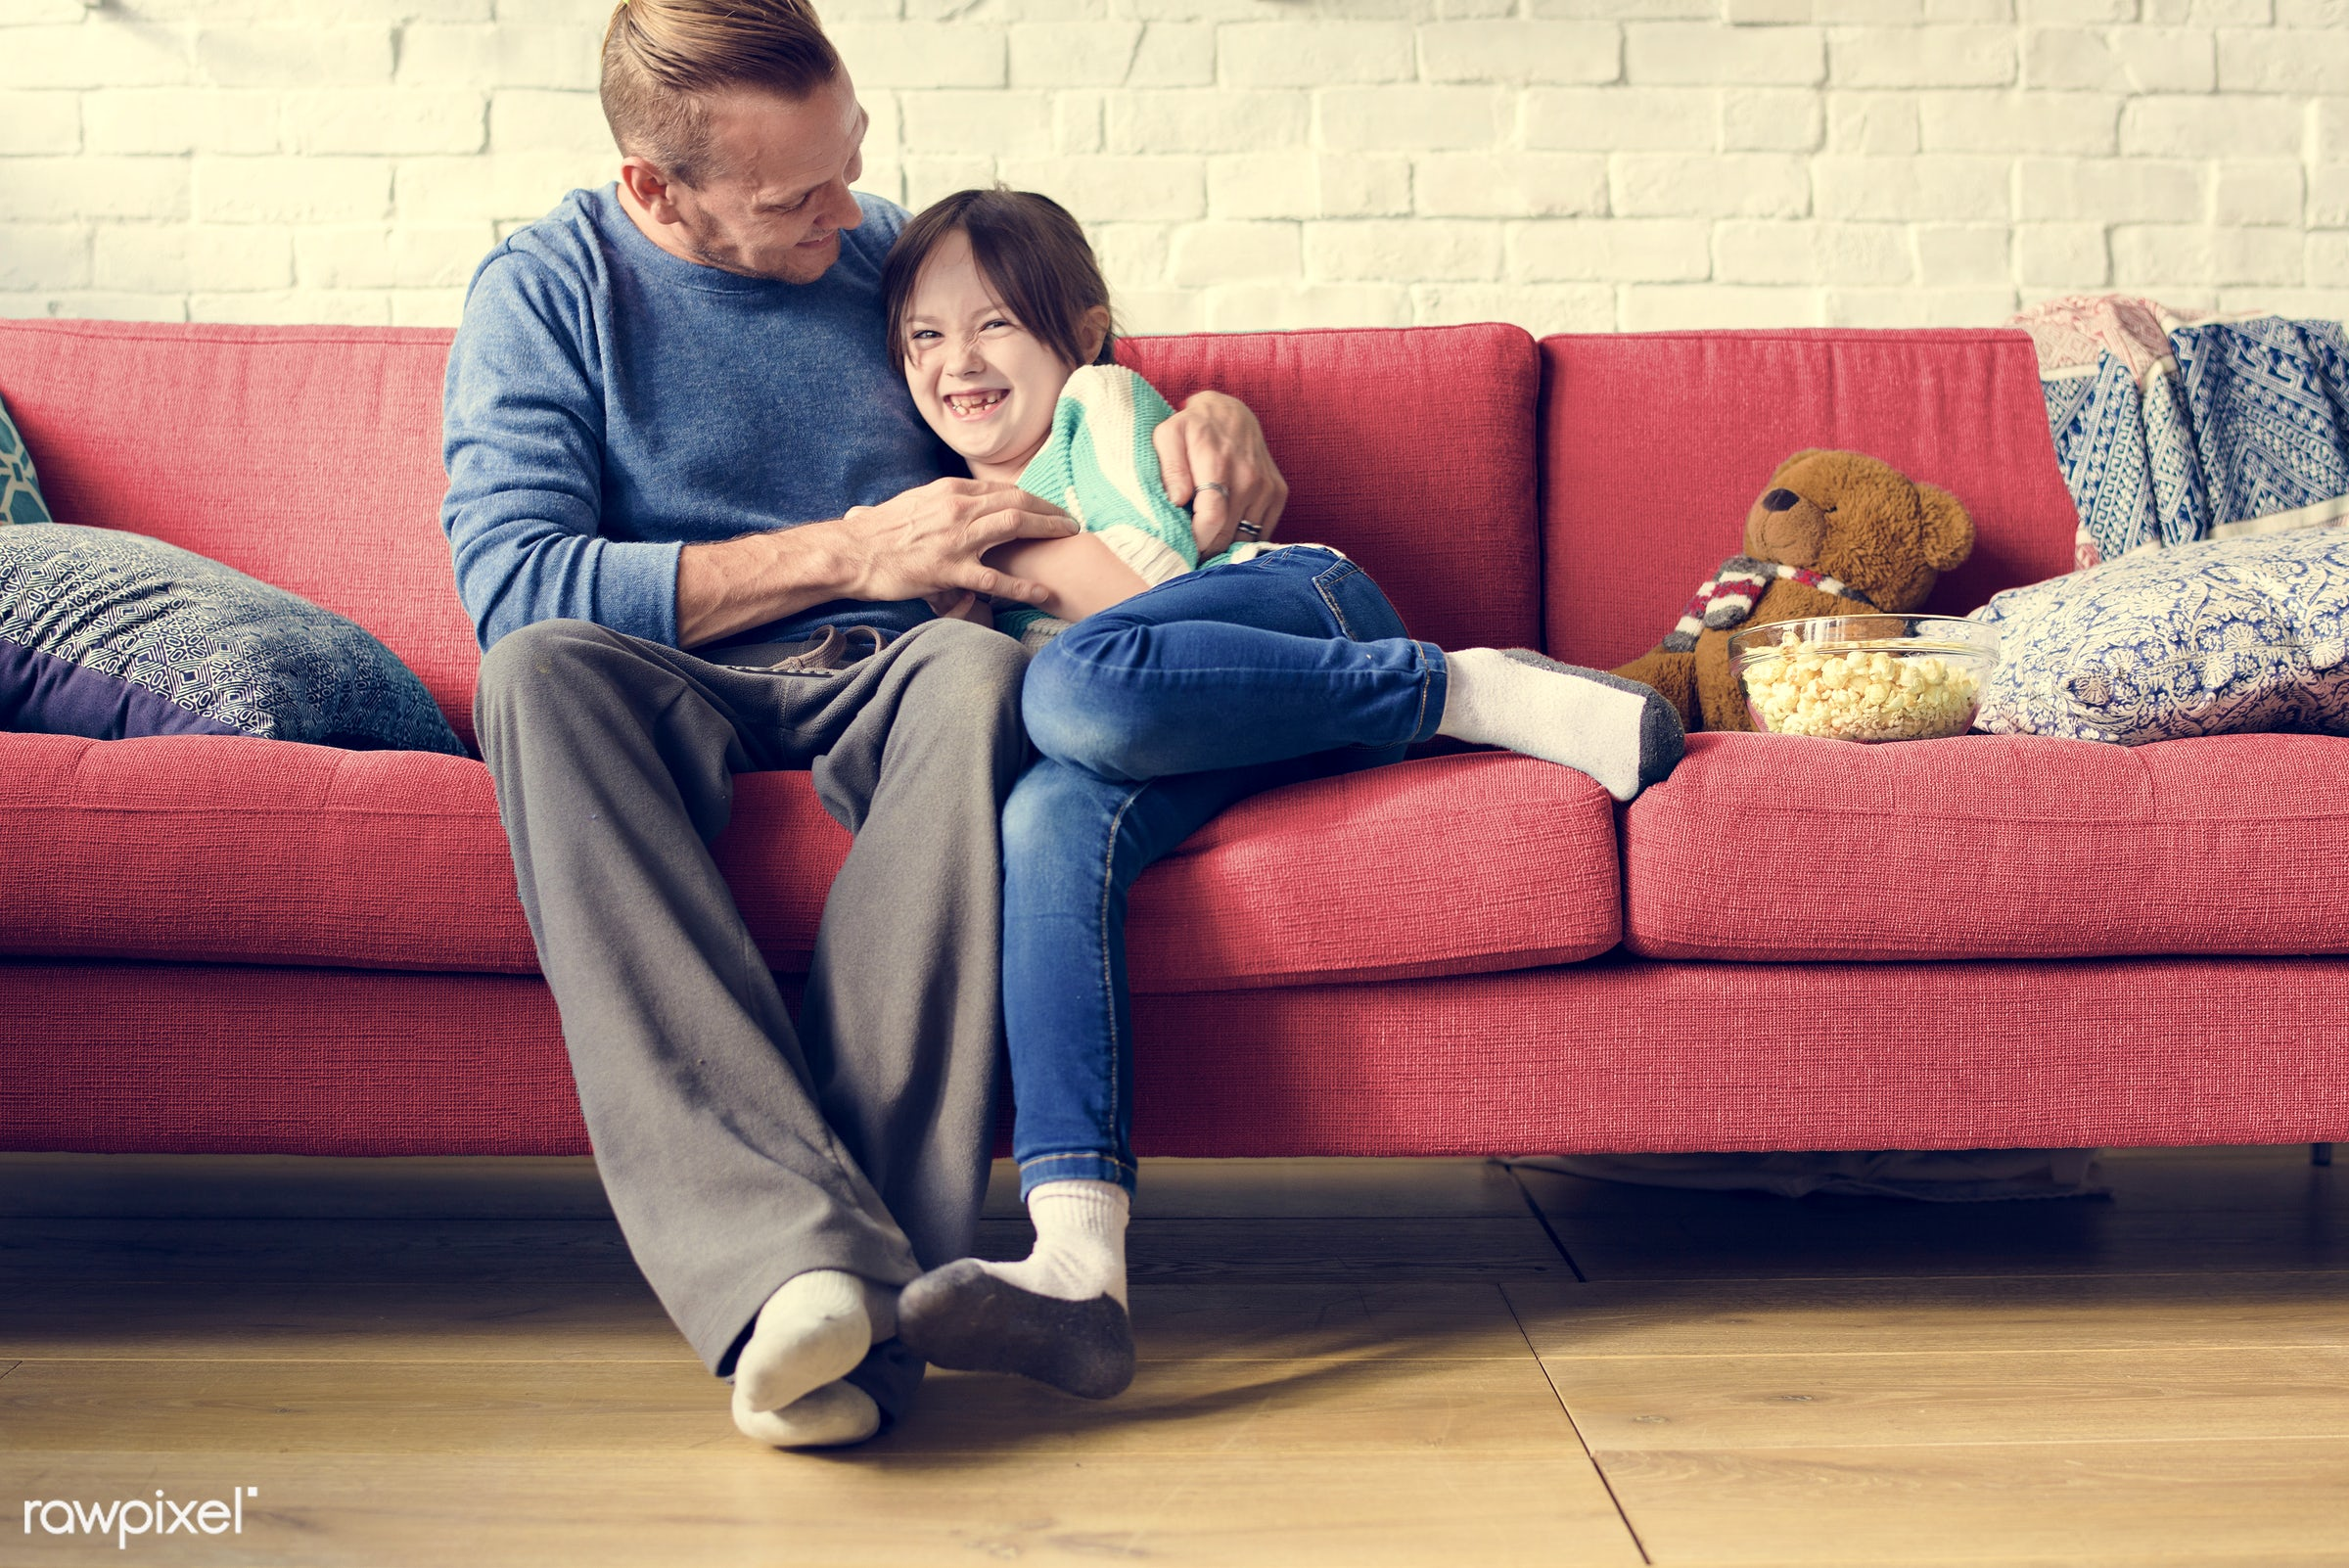 home, daddy, daughter, house, father, kid, love, child, sofa, laughing, girl, family, living room, casual, childhood,...